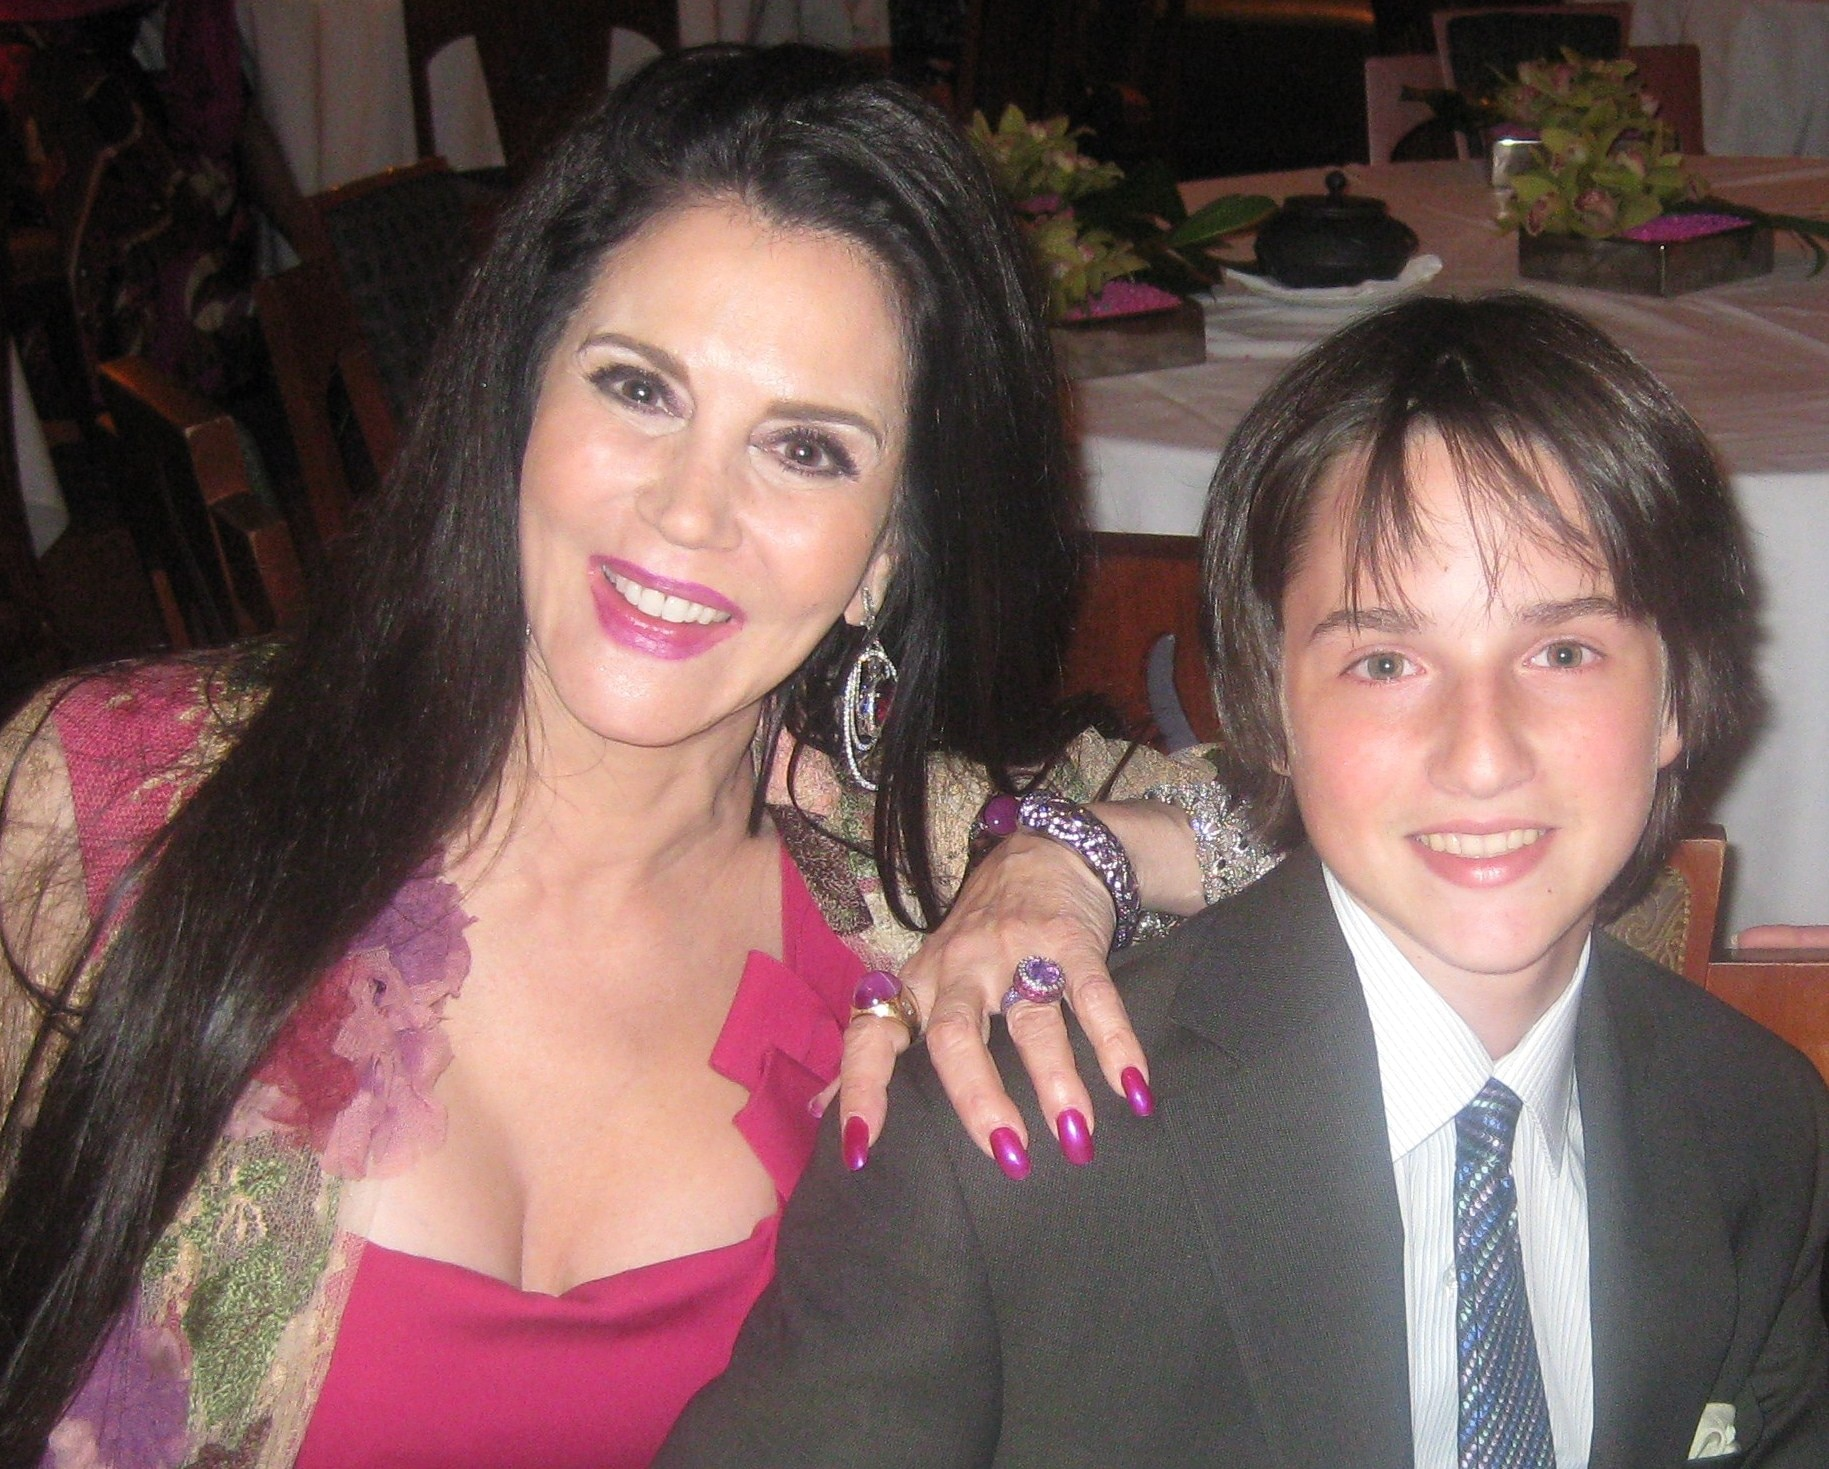 Youngest guest and son of Wolfgang Puck and Barbara Lazaroff, Byron with mom